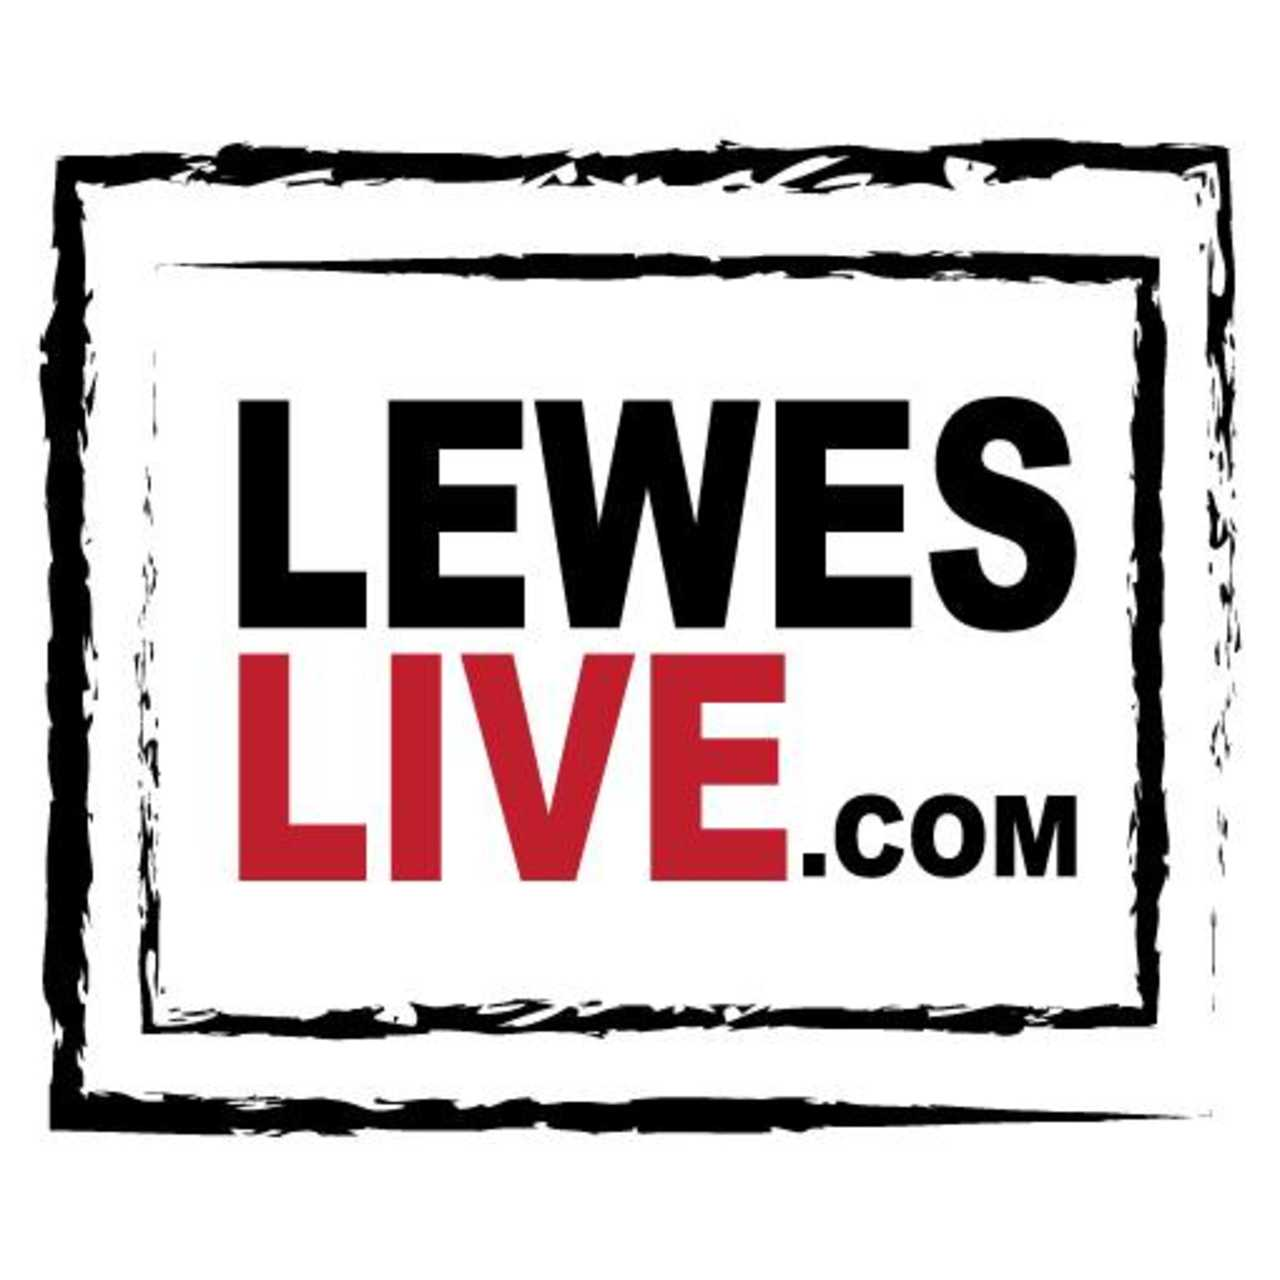 Lewes Live - Arts and Entertainment - Event in Lewes